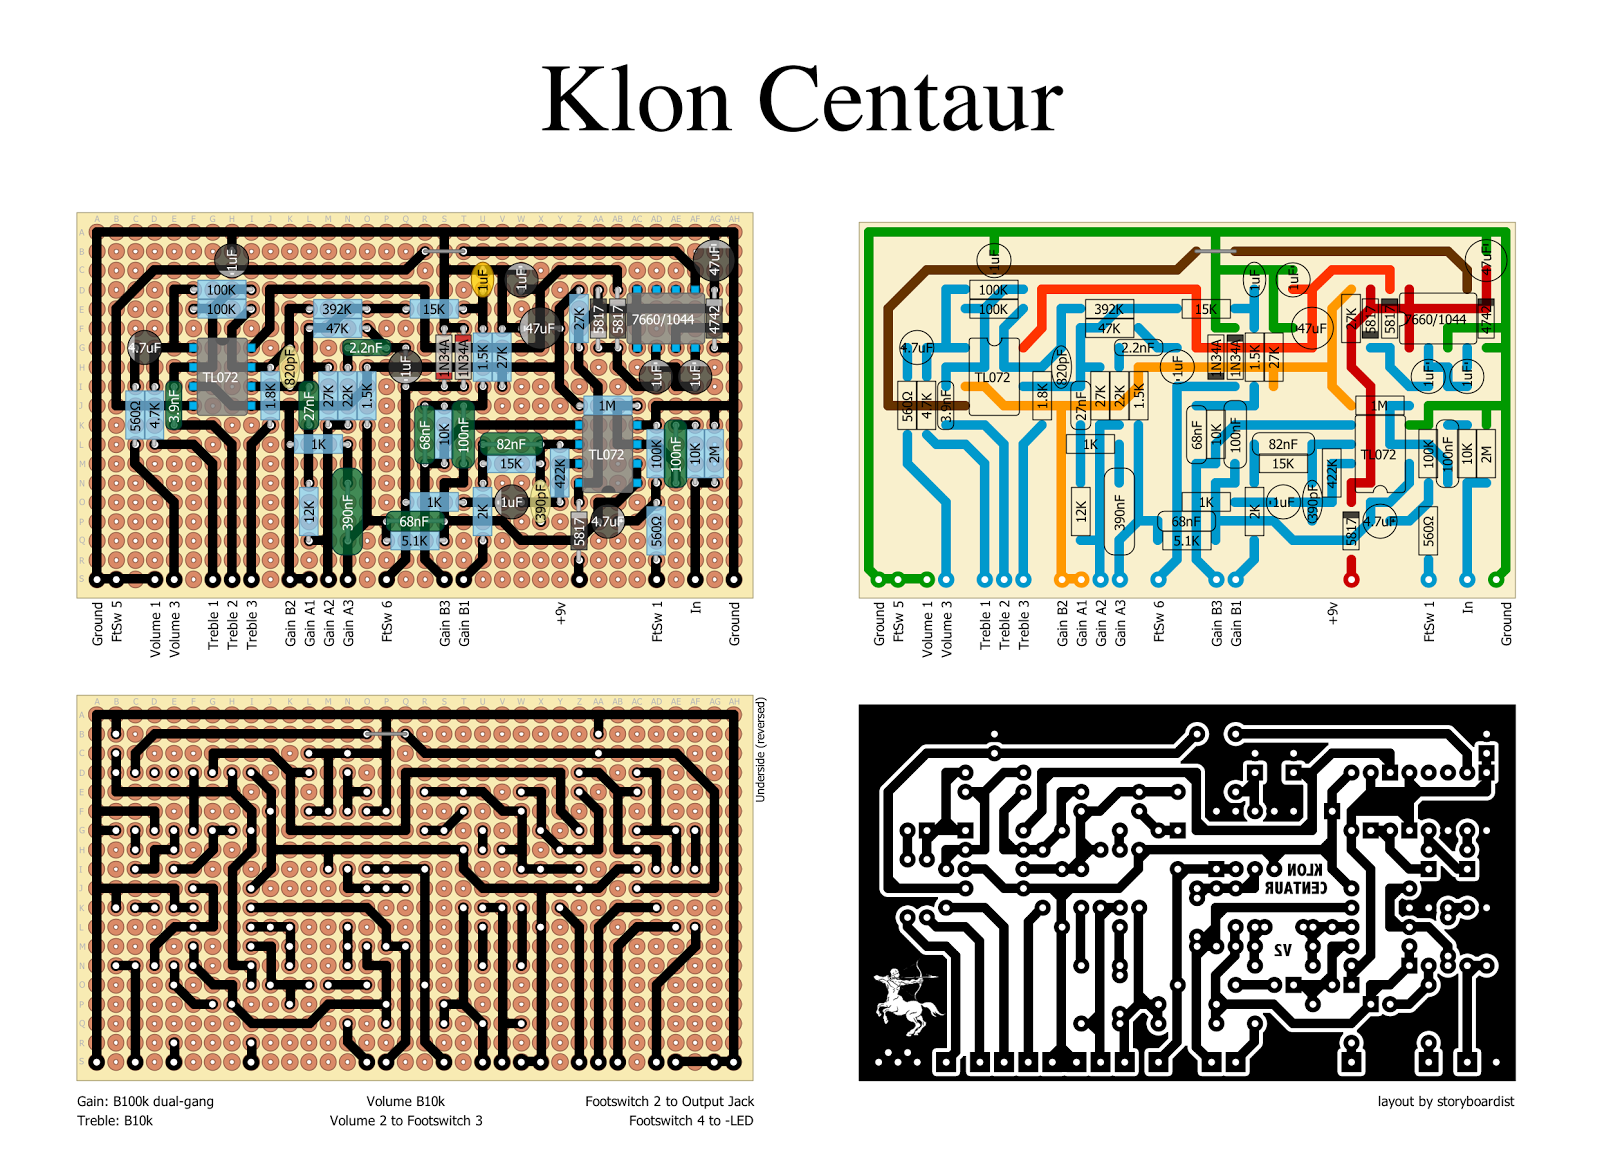 Perf and PCB Effects Layouts: Klon Centaur Klon Centaur Schematic on marshall bluesbreaker schematic, tube distortion pedal schematic, box mod schematic, divided by 13 amp schematic, overdrive schematic, wah pedal schematic, ibanez ts9 schematic, lovepedal eternity burst schematic, lovepedal amp schematic, proco rat schematic, orange squeezer schematic, hermida zendrive schematic, rangemaster schematic, ocd schematic, cry baby wah schematic, boost pedal schematic, fuzz face schematic, simple distortion pedal schematic, winchester super x 1 schematic, mxr phase 100 schematic,